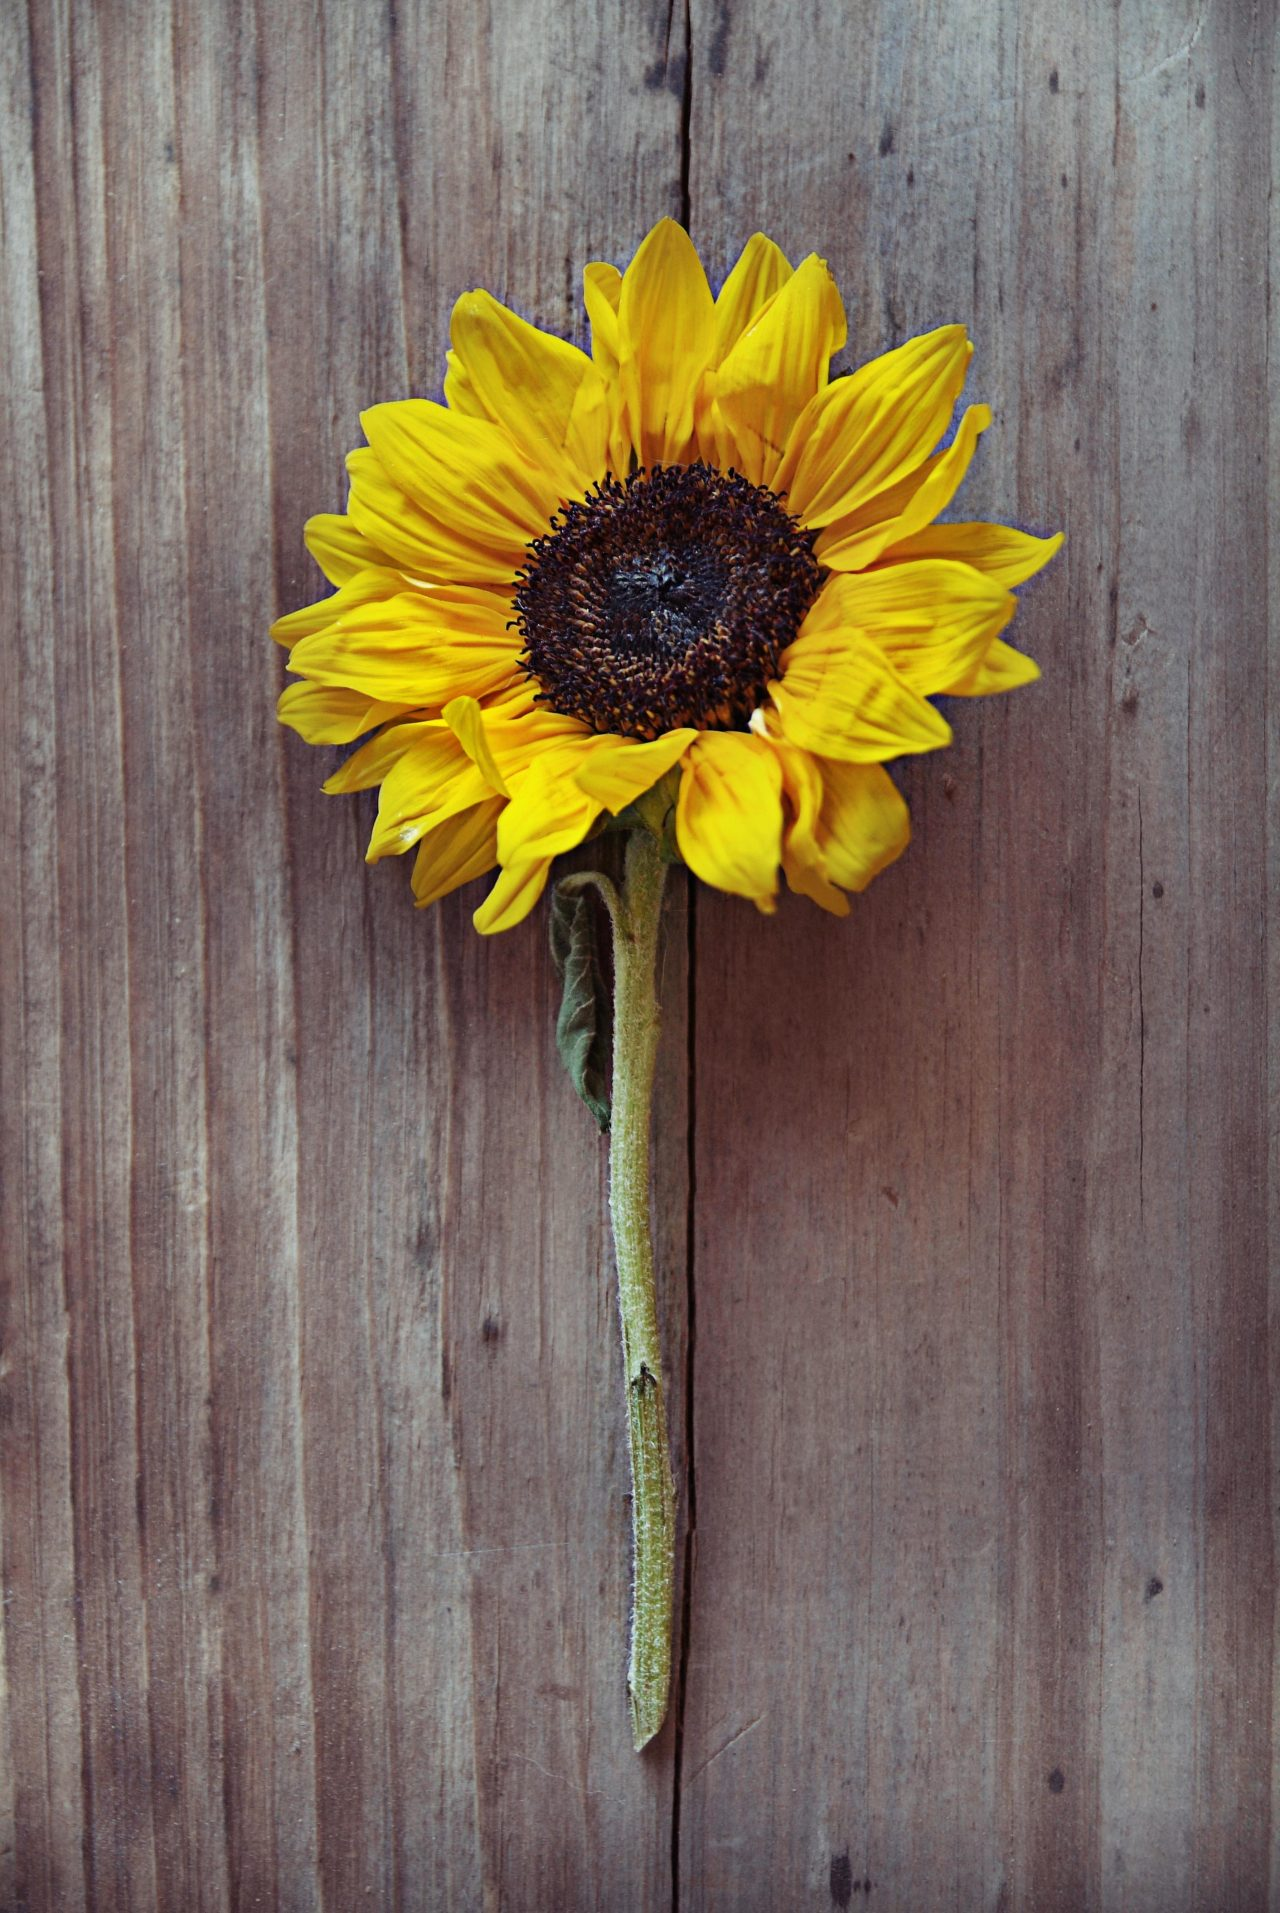 sunflower: by Ian Norris